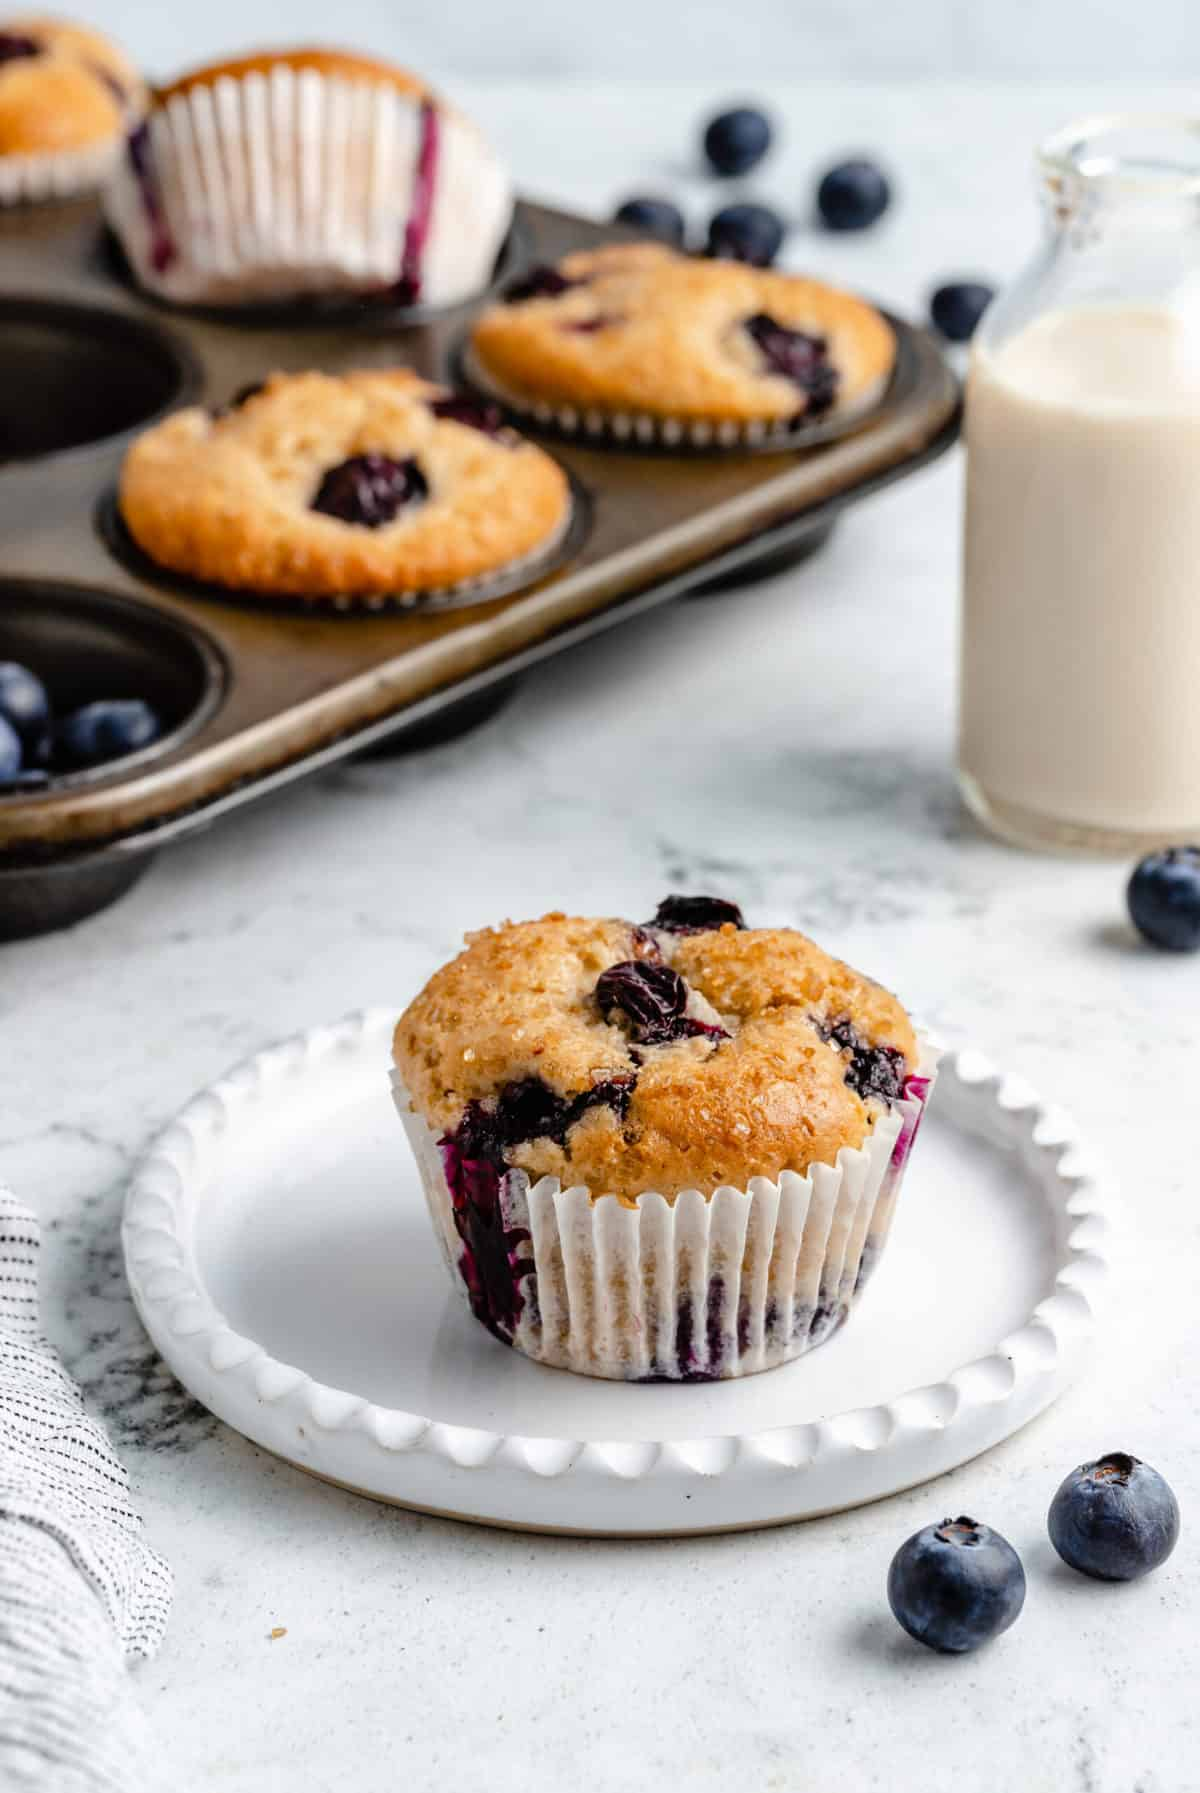 Blueberry muffin on a plate.